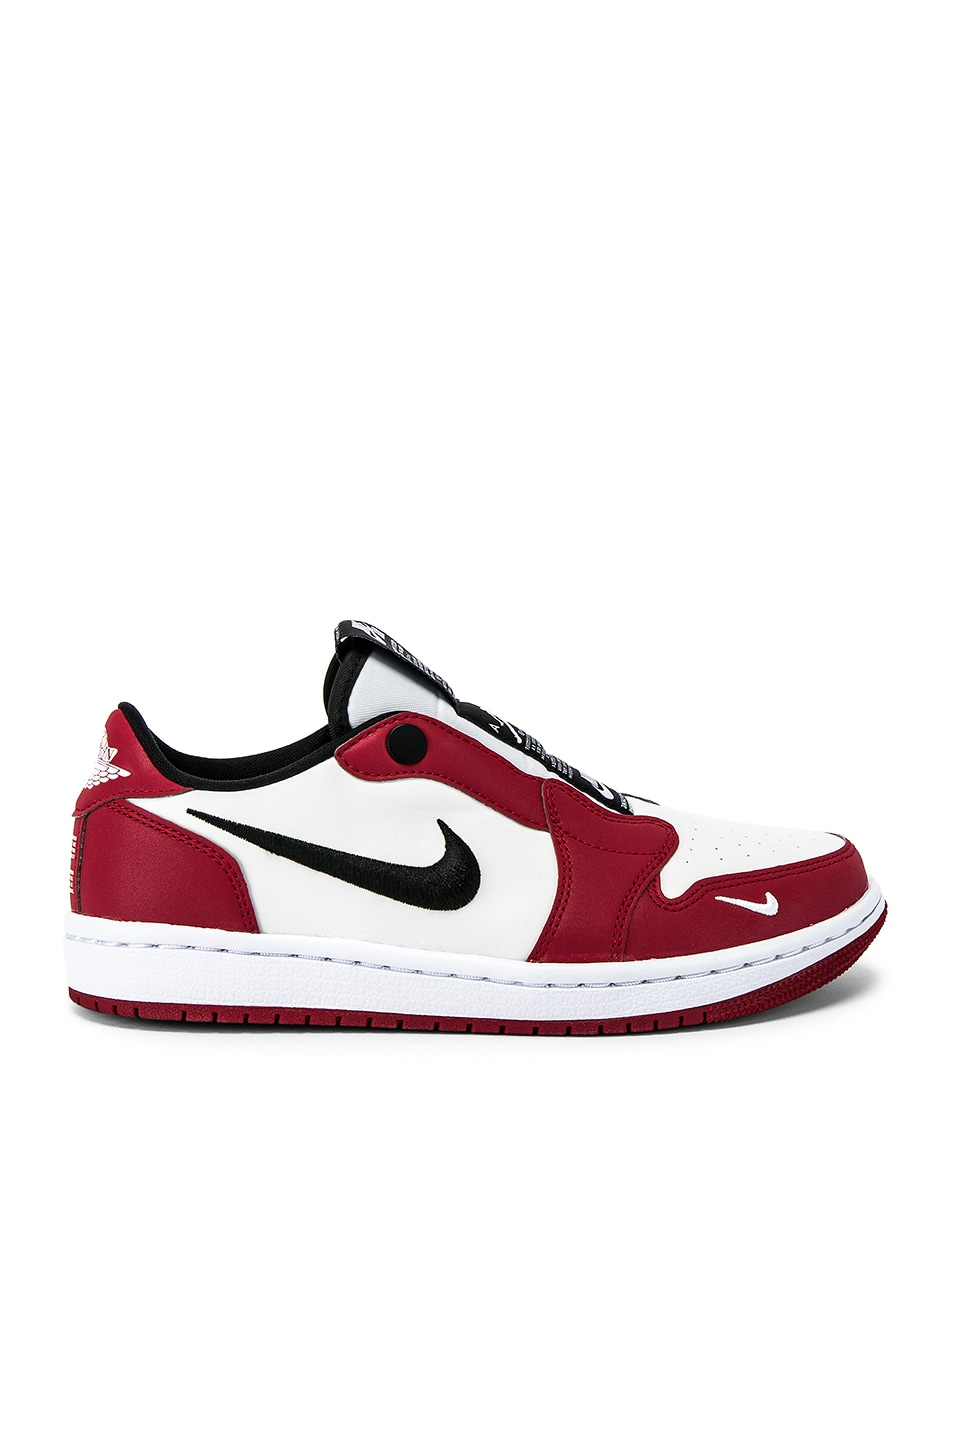 Jordan AJ1 Slip Chicago Sneaker in Red & White